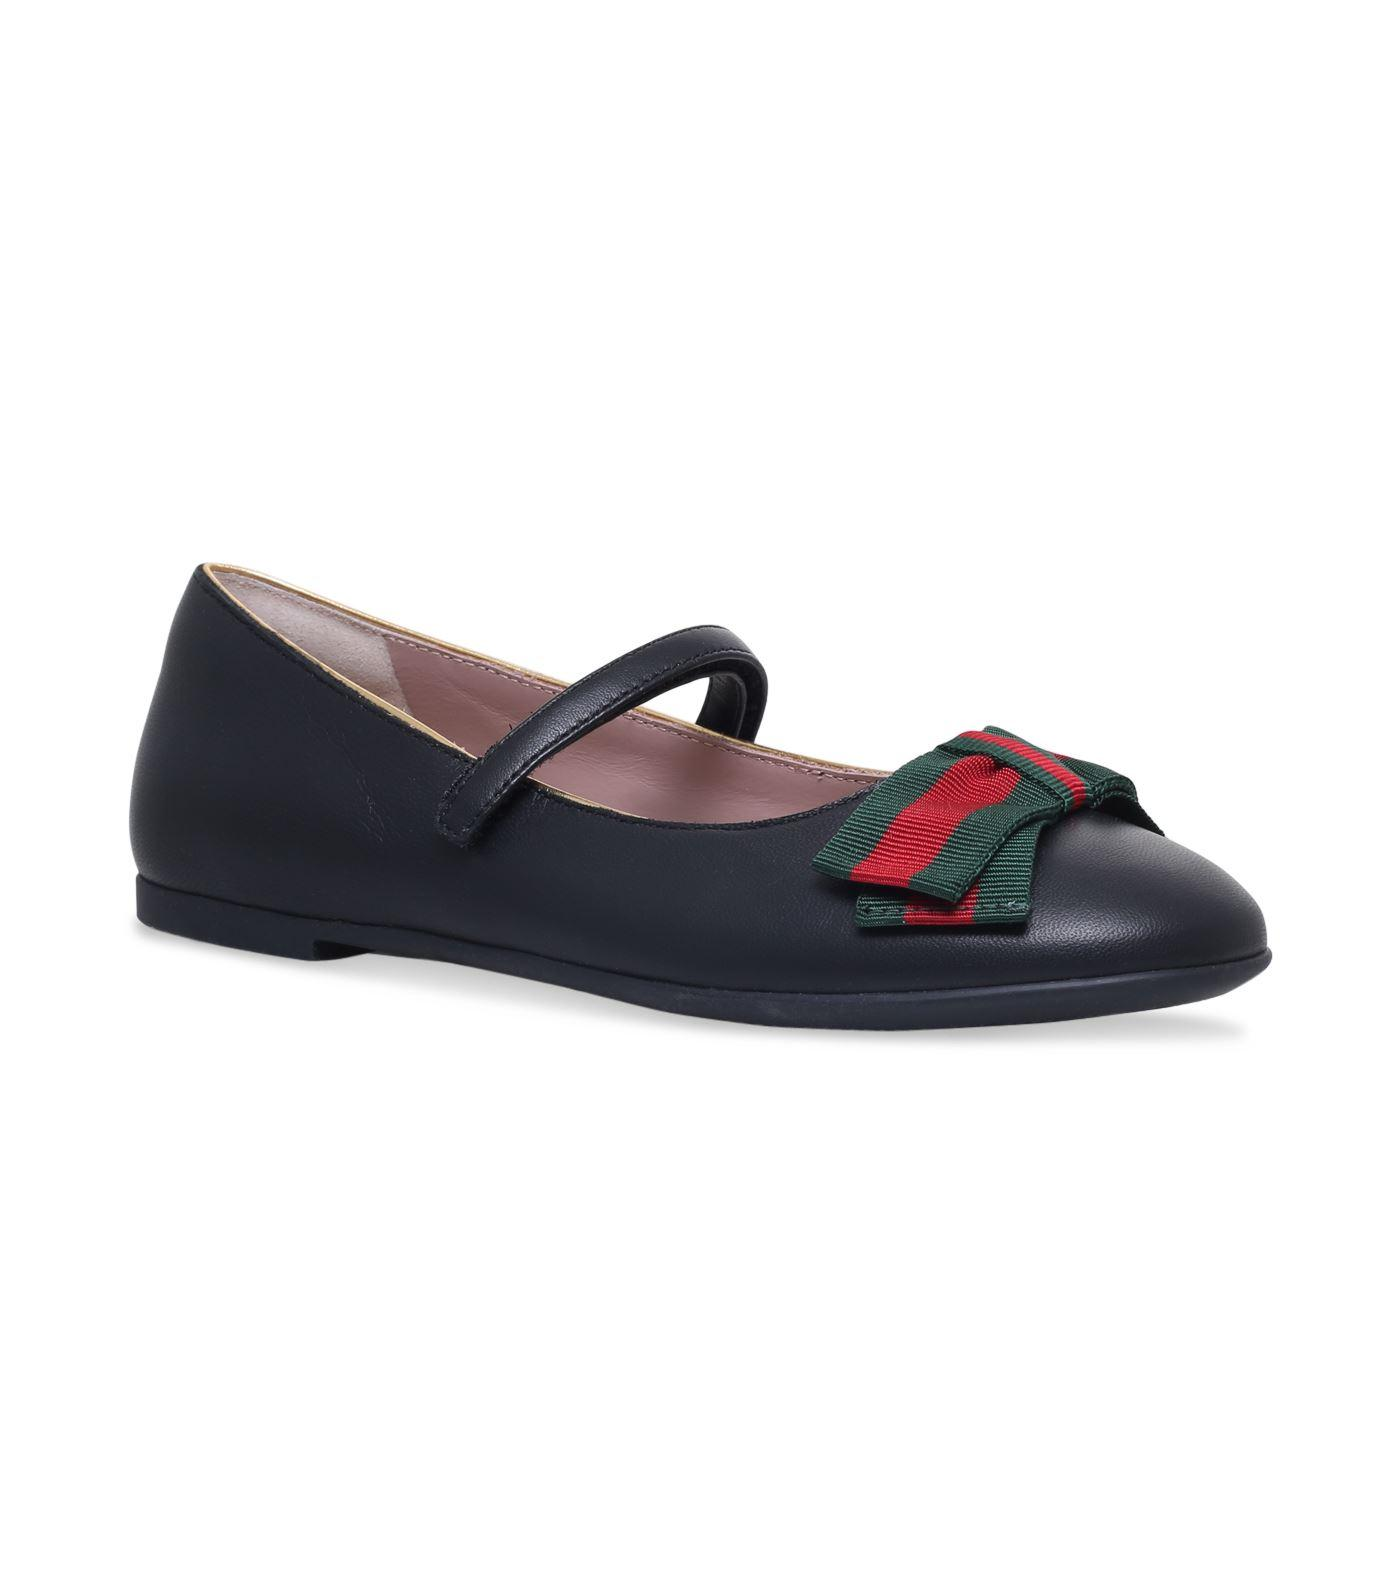 Gucci Camille Mary Jane Shoes In Black